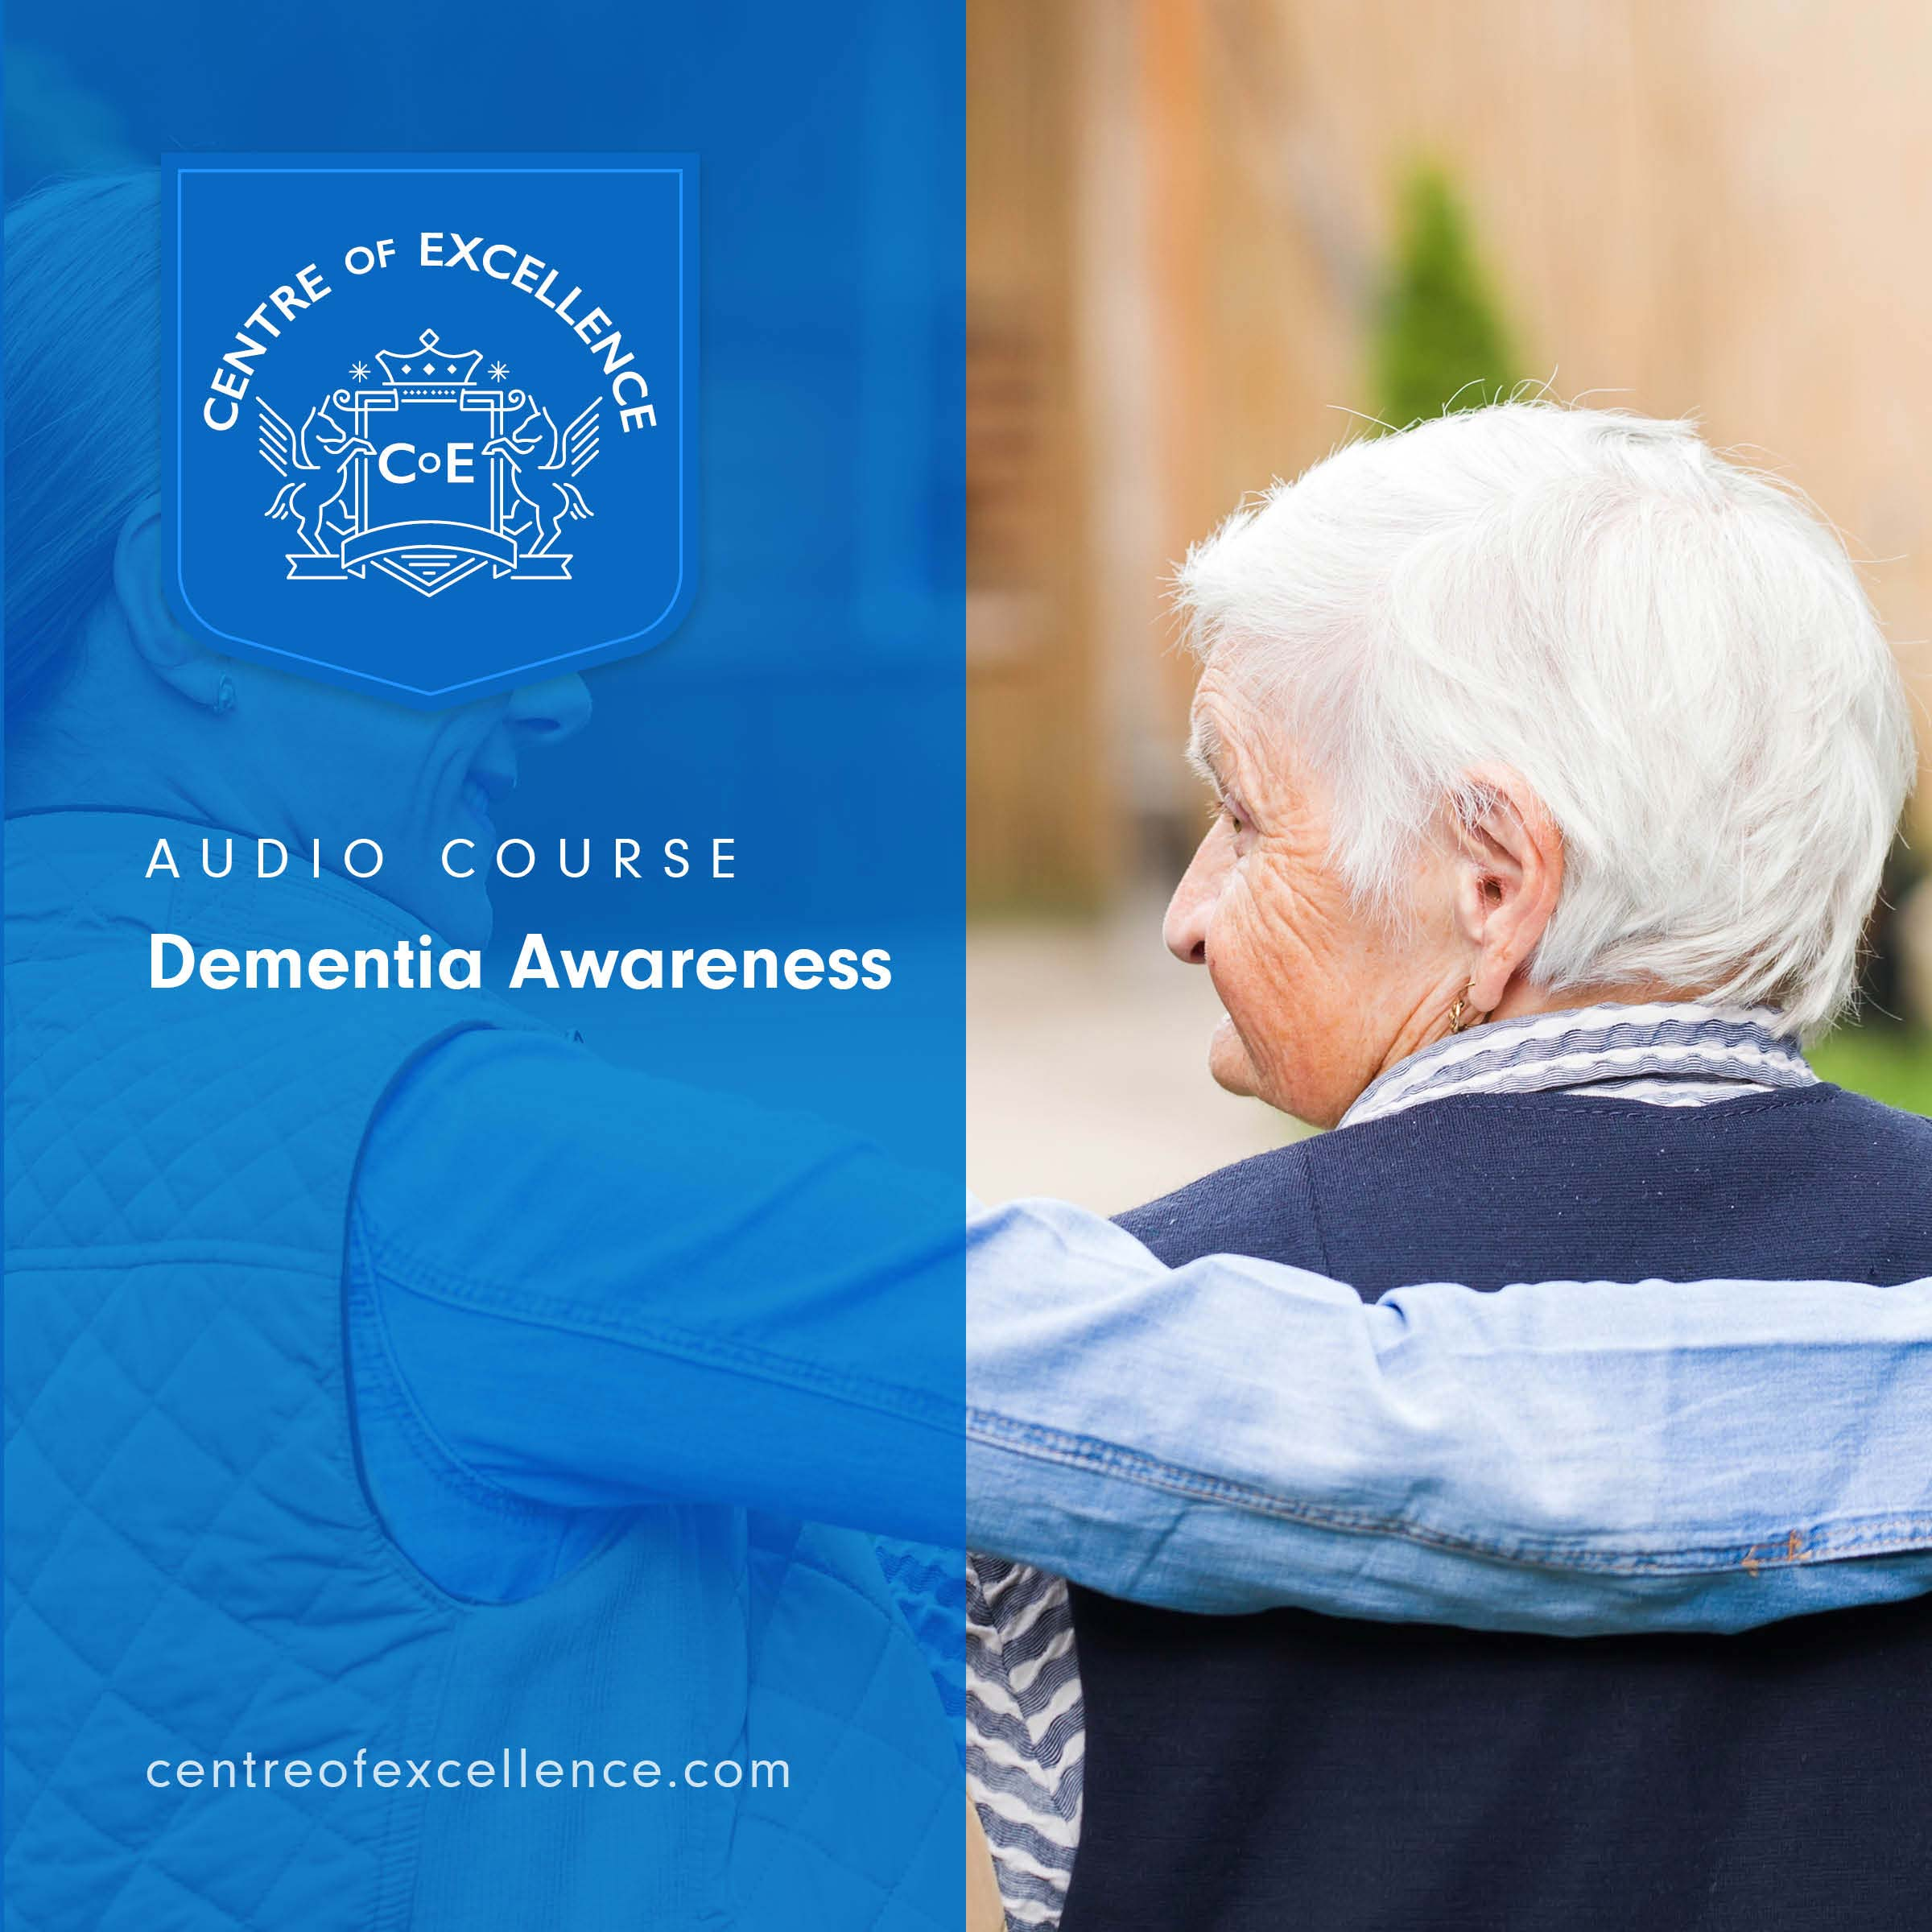 Dementia Awareness Audio Course